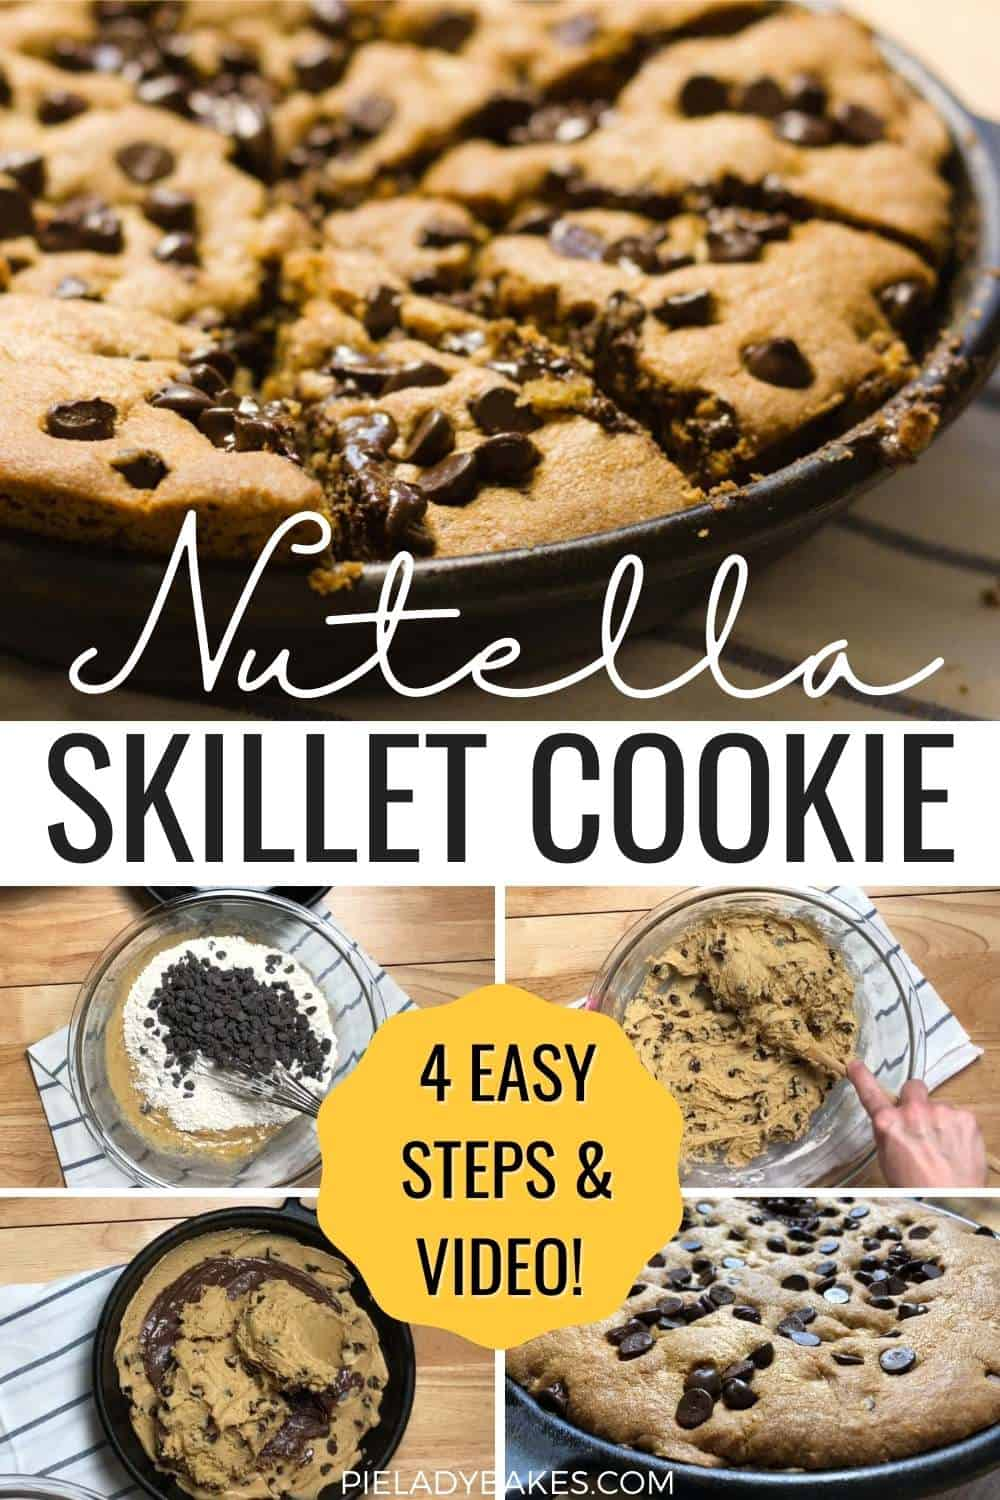 nutella stuffed skillet cookie with 5 images one feature shot with slices and then 4 process shots on the bottom